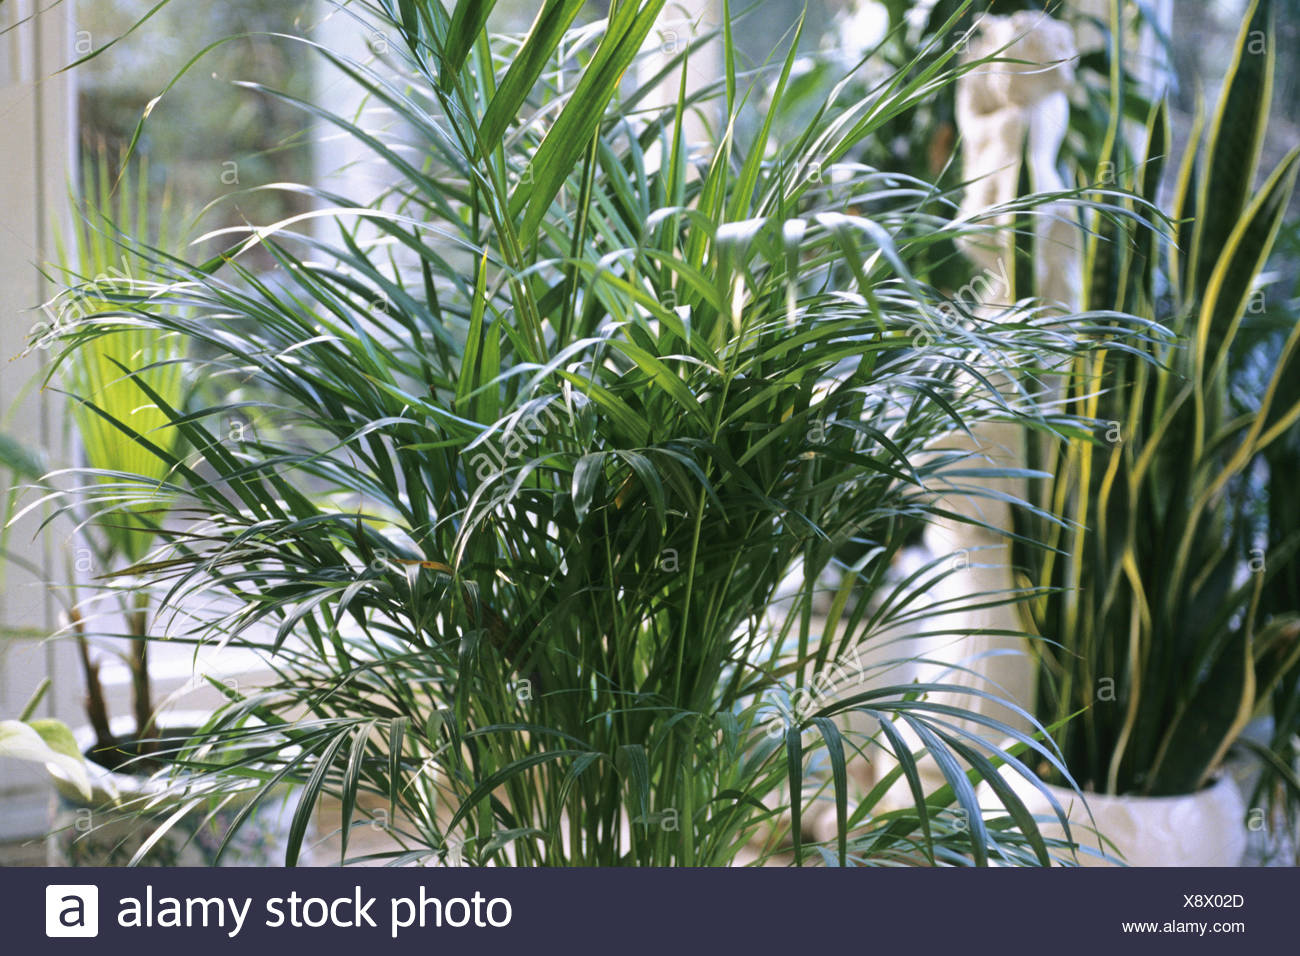 Yellow Palm Areca Palm Chrysalidocarpus Lutescens Chrysalidocarpus Lutescens Stock Photos And Chrysalidocarpus